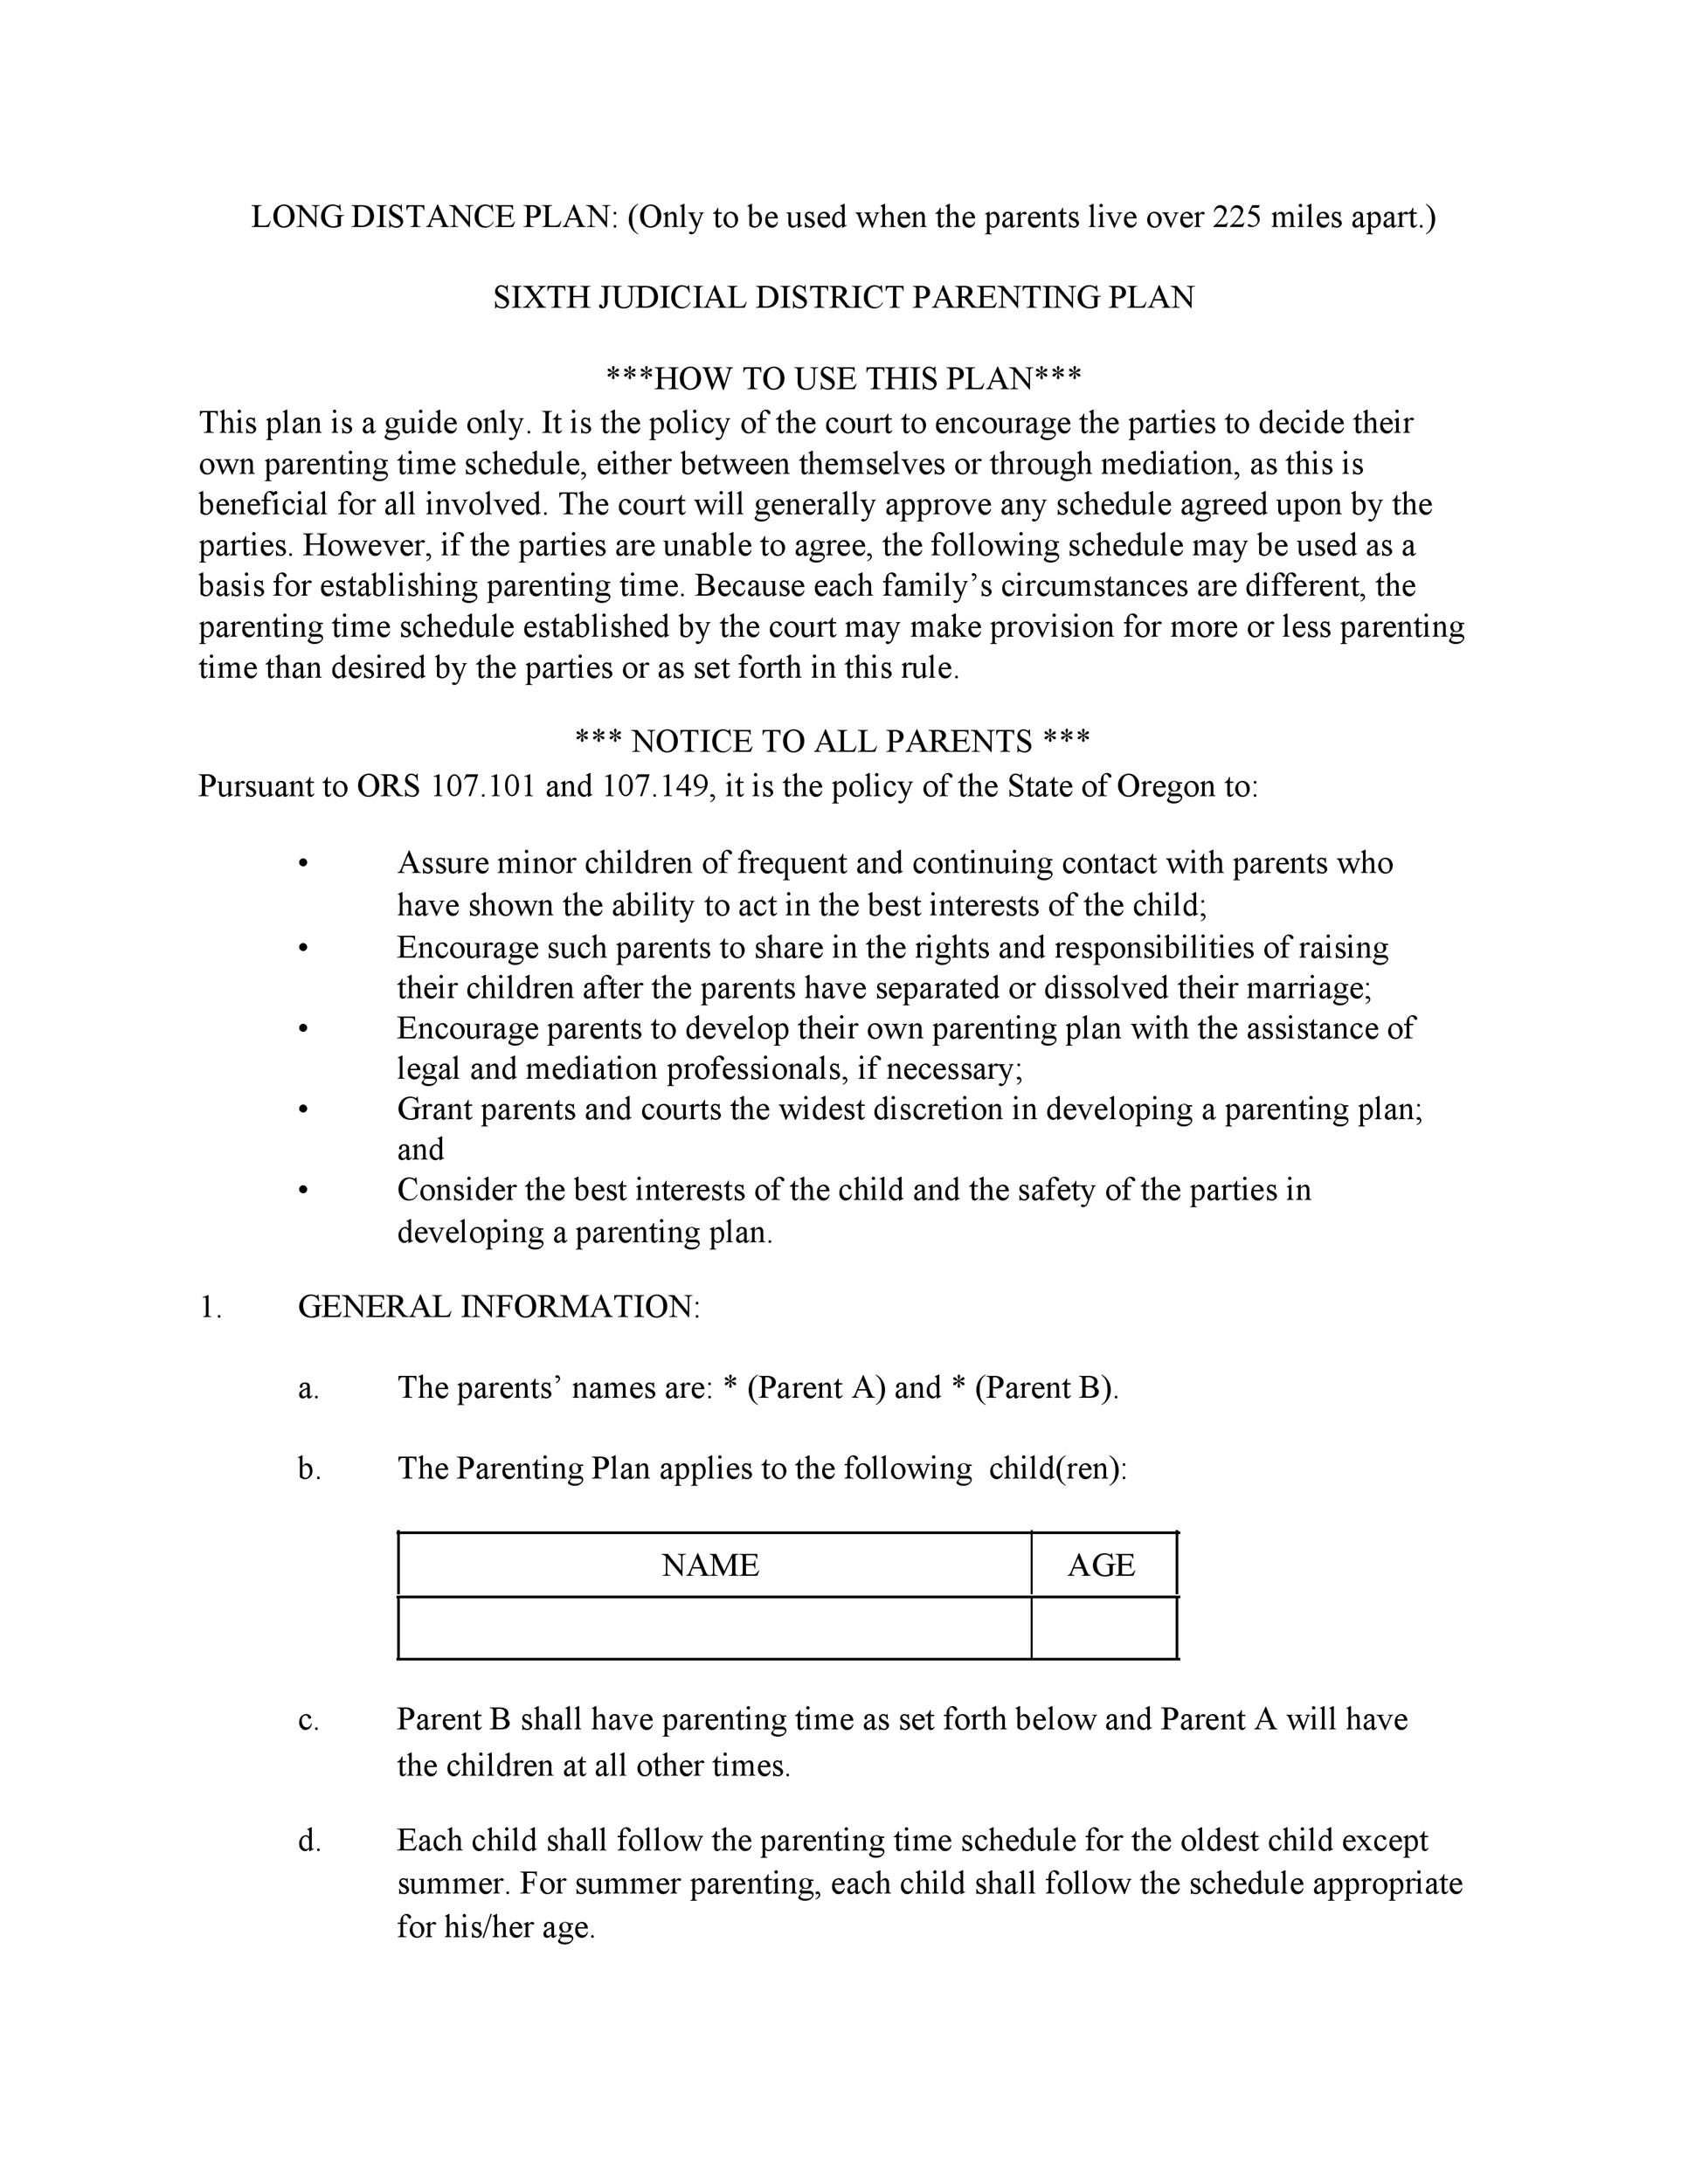 Free parenting plan template 19